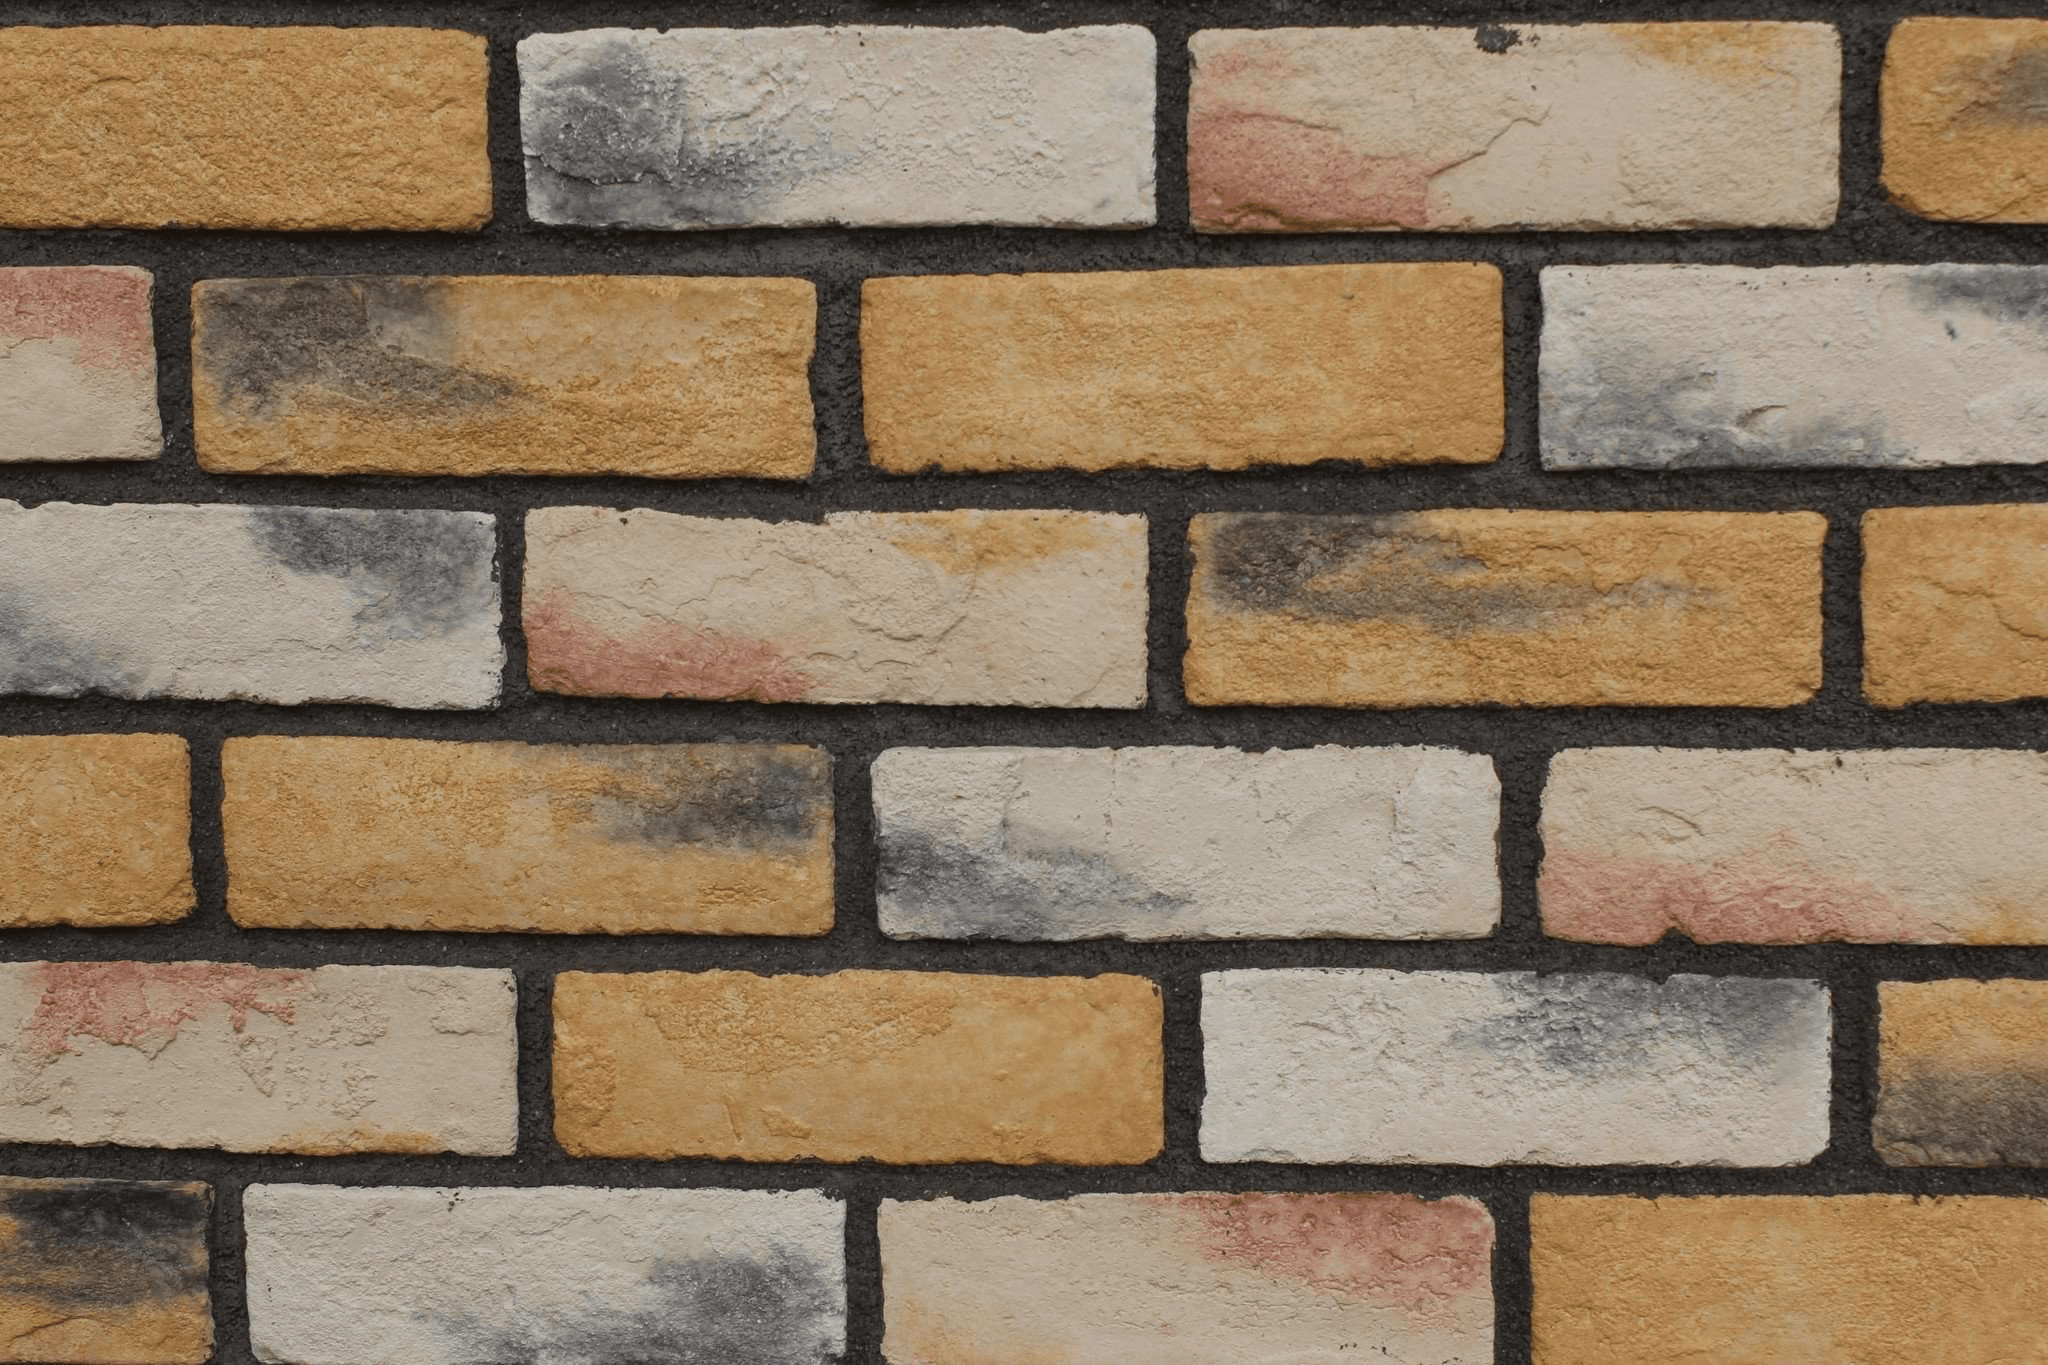 Old Dutch - Country Brick cheap stone veneer clearance - Discount Stones wholesale stone veneer, cheap brick veneer, cultured stone for sale